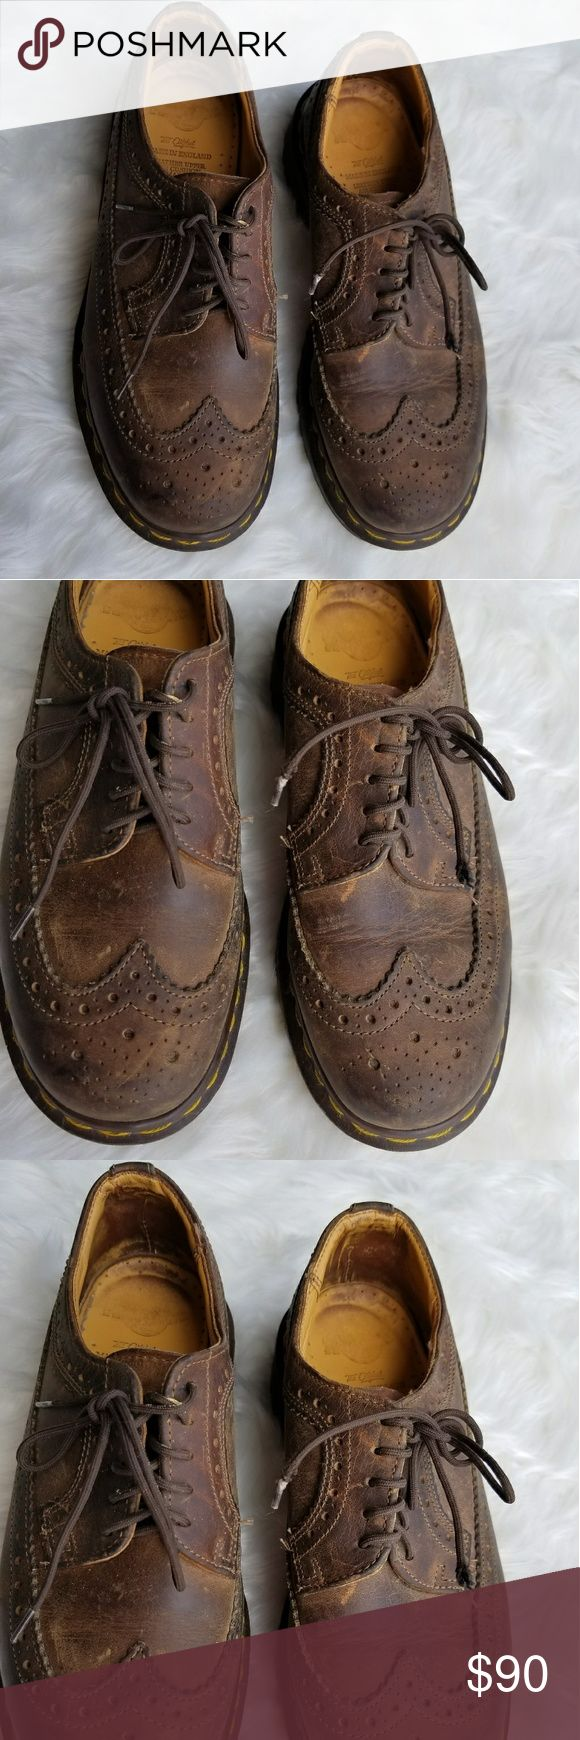 Dr. Martens Women's Vintage Oxford Boots Worn just a few times. Excellent condition. Dr. Martens Women's Vintage Oxford Lace Up Boots. Heavy. I'll take care of extra POSTAGE cost. Dr. Martens Shoes Lace Up Boots